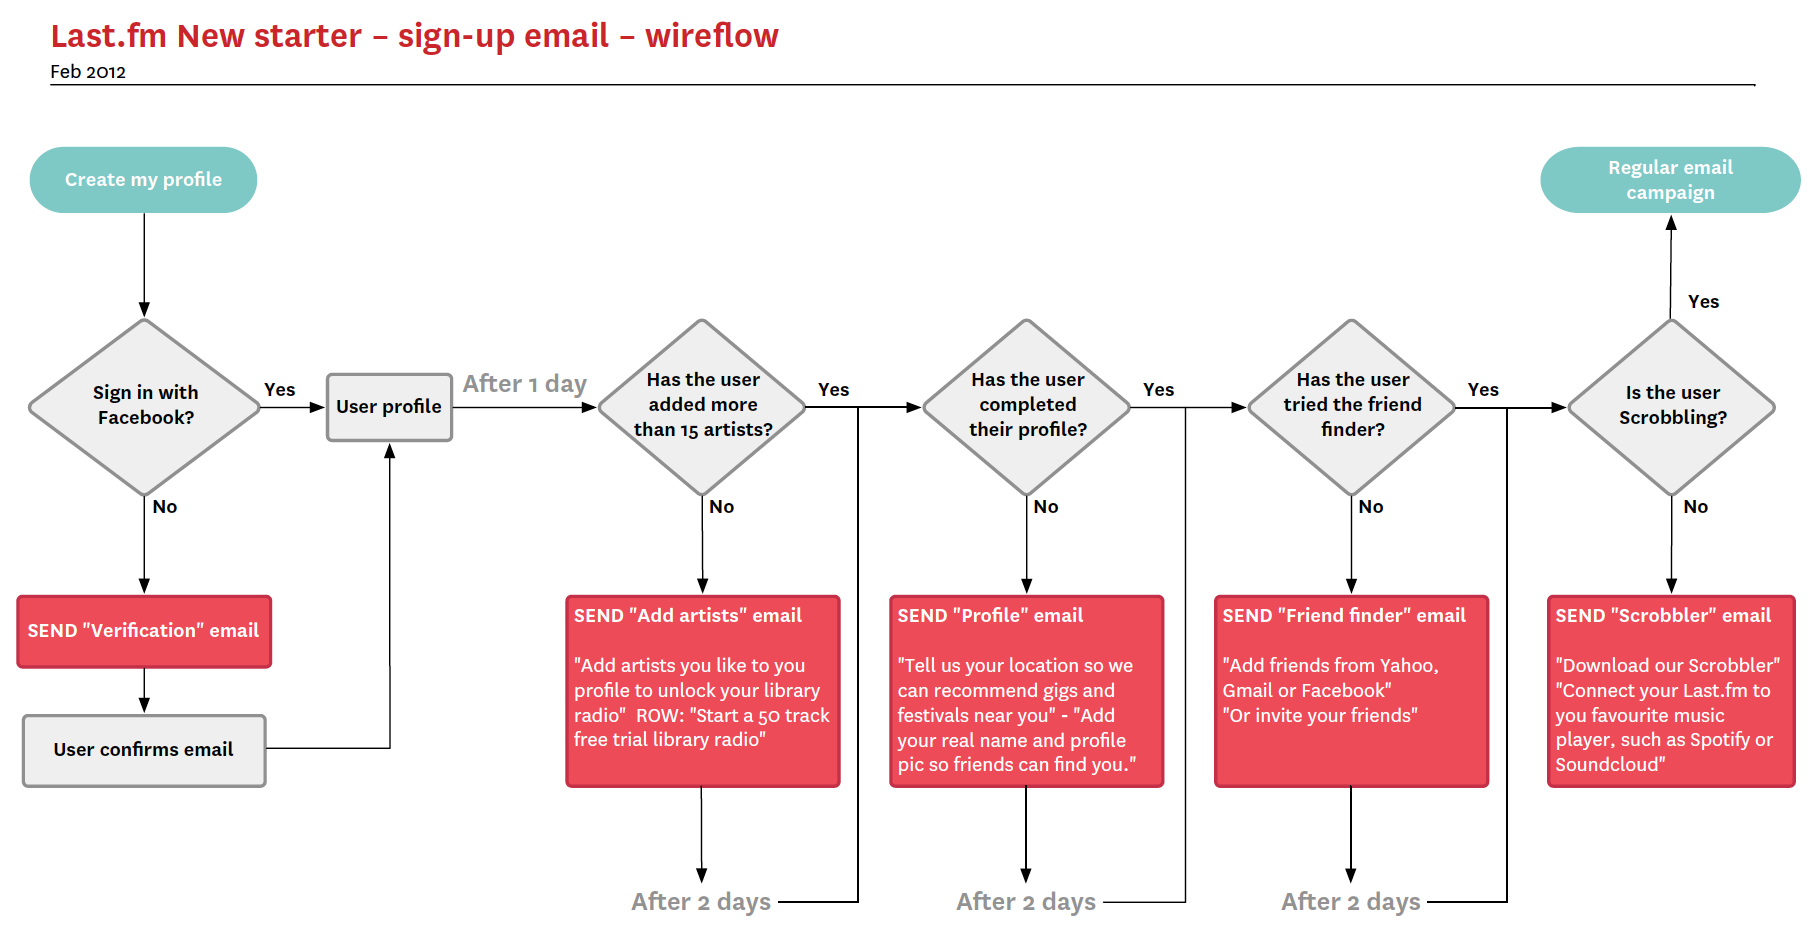 new starter email user flow diagram created in omnigraffle    new starter email user flow diagram created in omnigraffle   design \ ux   pinterest